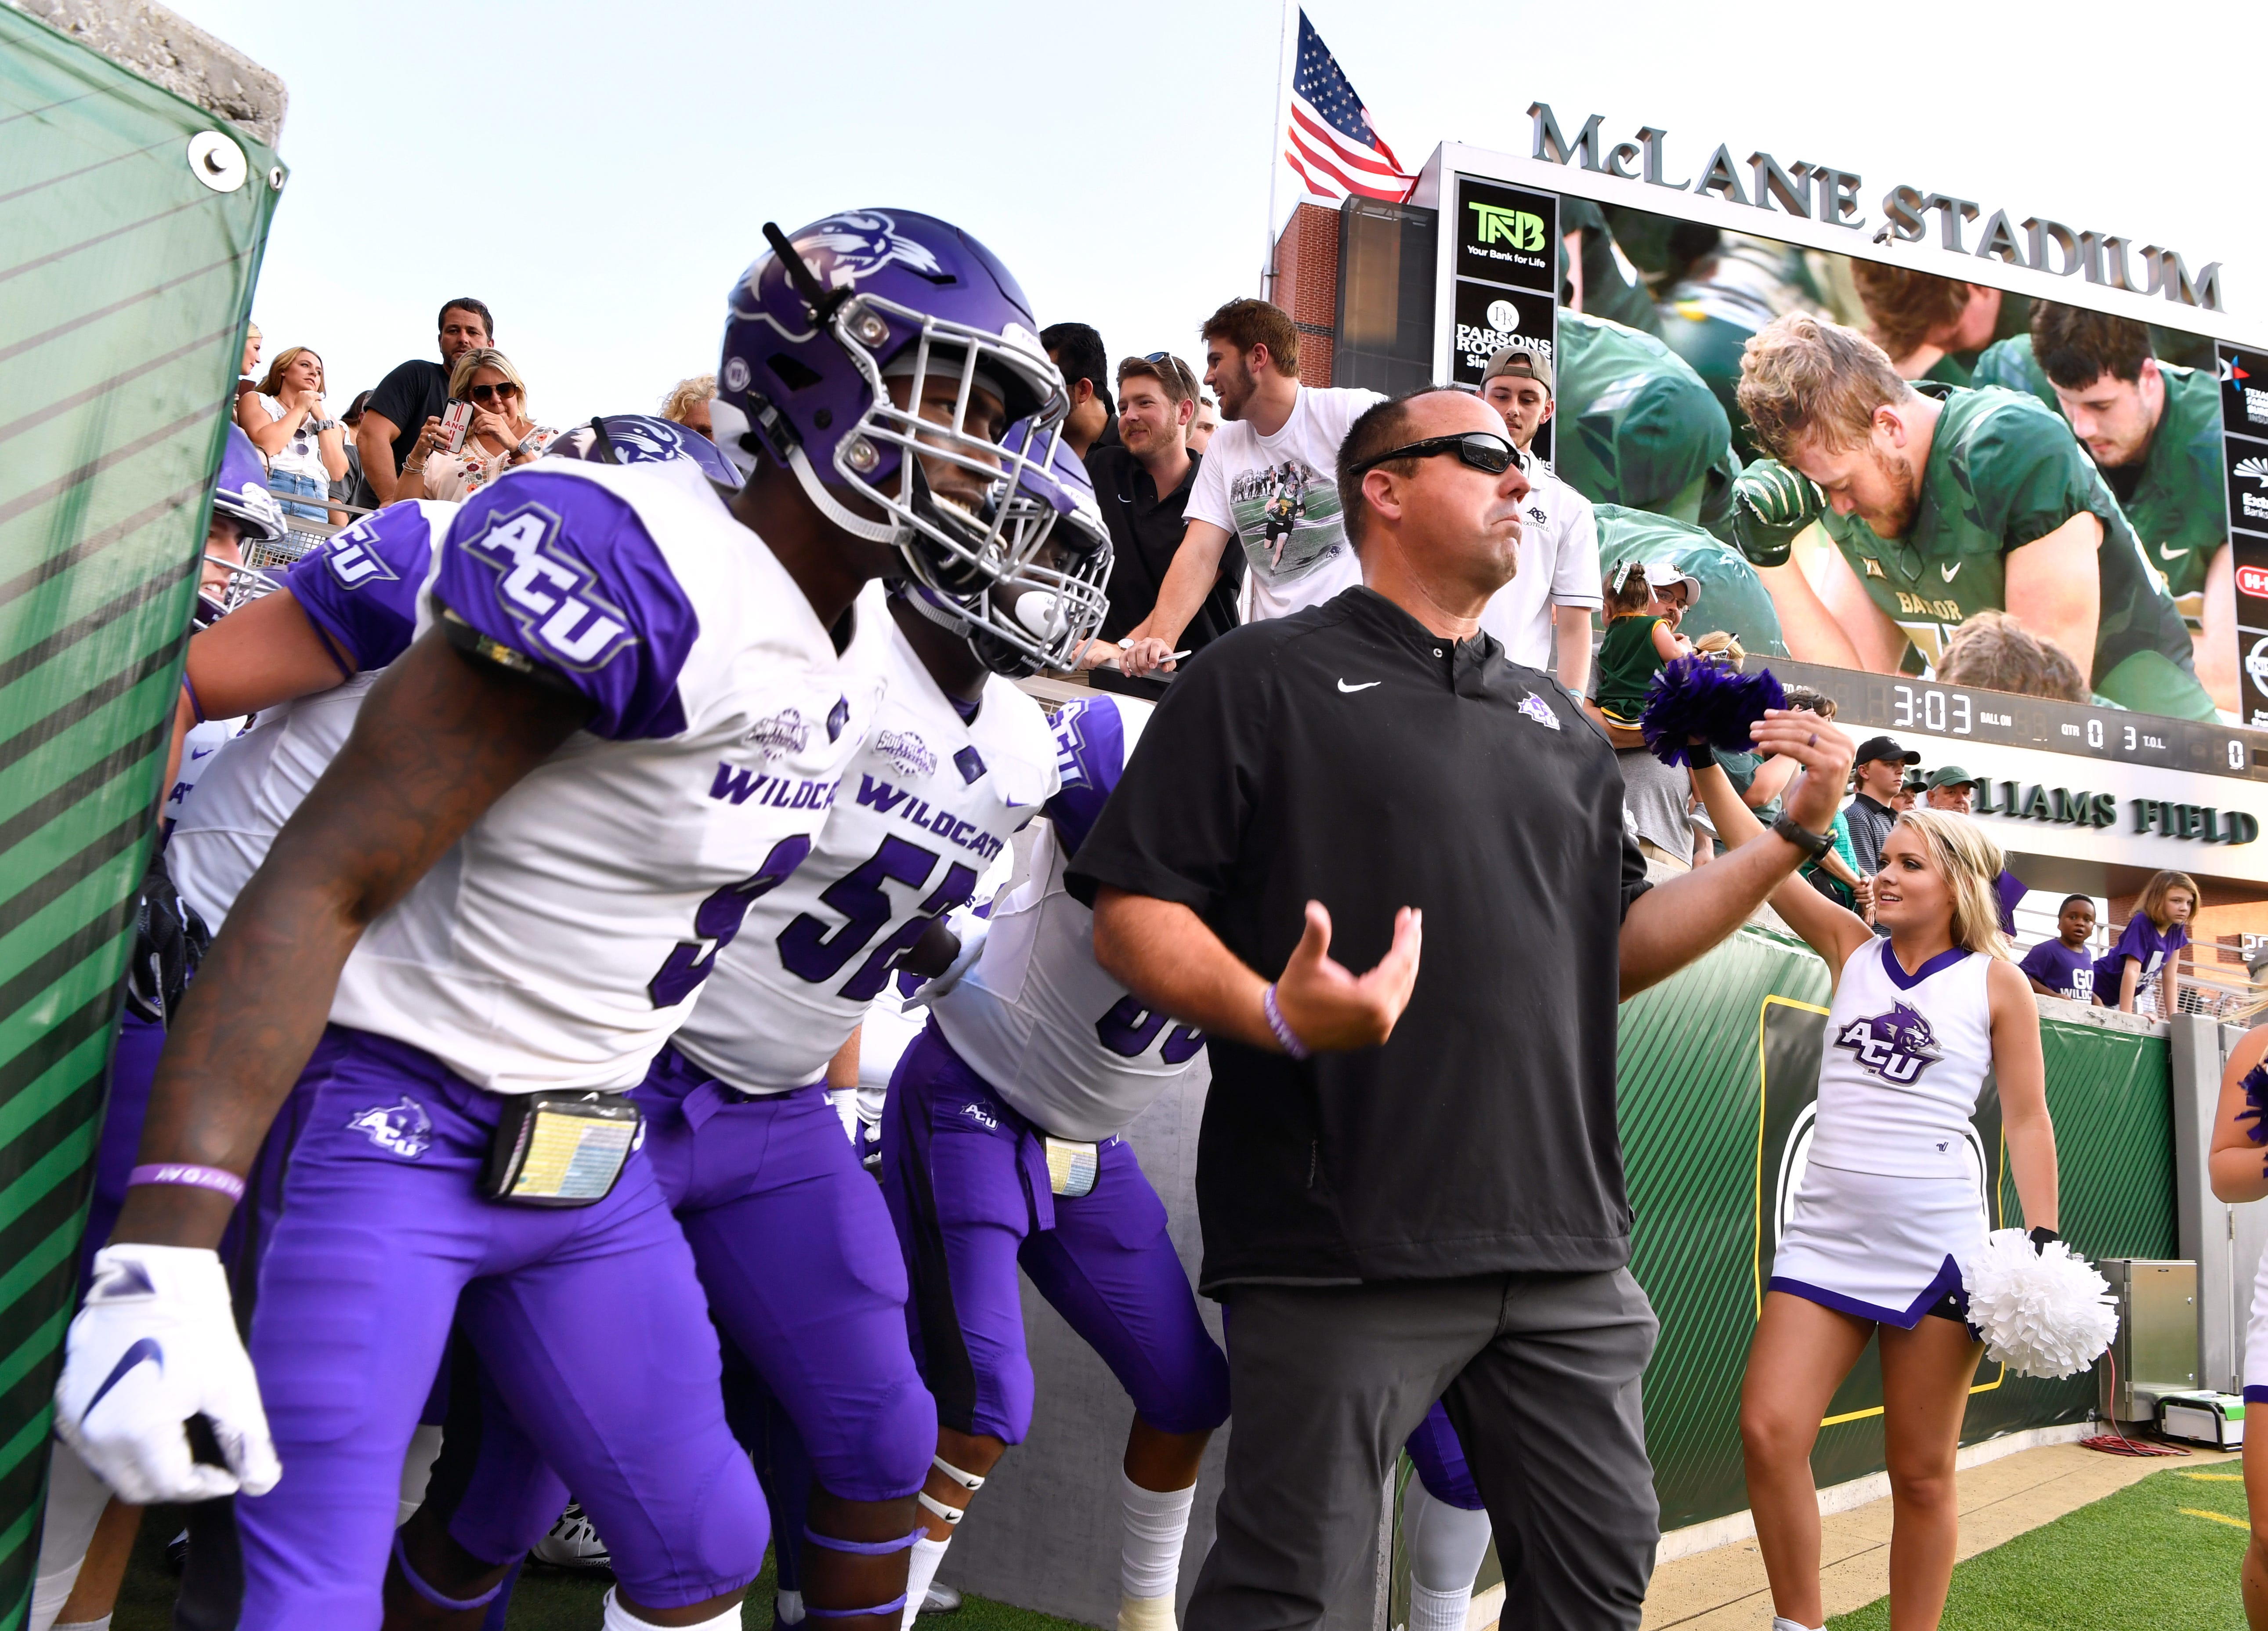 Abilene Christian University head coach Adam Dorell waits to lead the Wildcats onto the field in McClane Stadium at Baylor University Saturday Sept. 1, 2018.